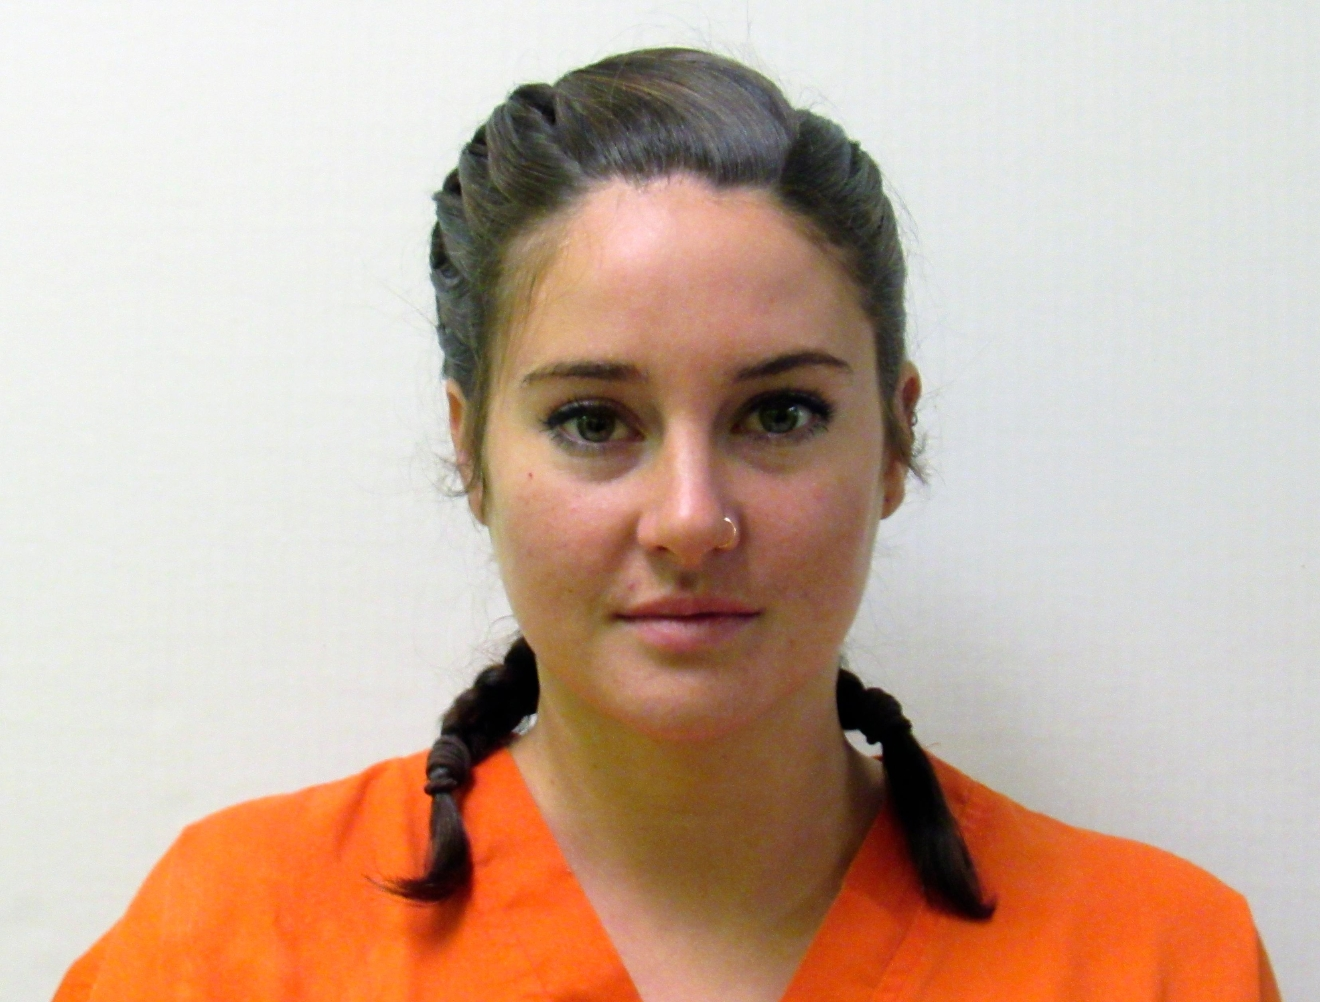 This October 2016 photo provided by the Morton County Sheriff's Department in Mandan, N.D., shows actress Shailene Woodley who was arrested Monday, Oct. 10, 2016, during a protest against the Dakota Access pipeline. Woodley is scheduled to appear in a North Dakota court Oct. 24 on criminal trespass and riot charges. (Morton County Sheriff's Department via AP)